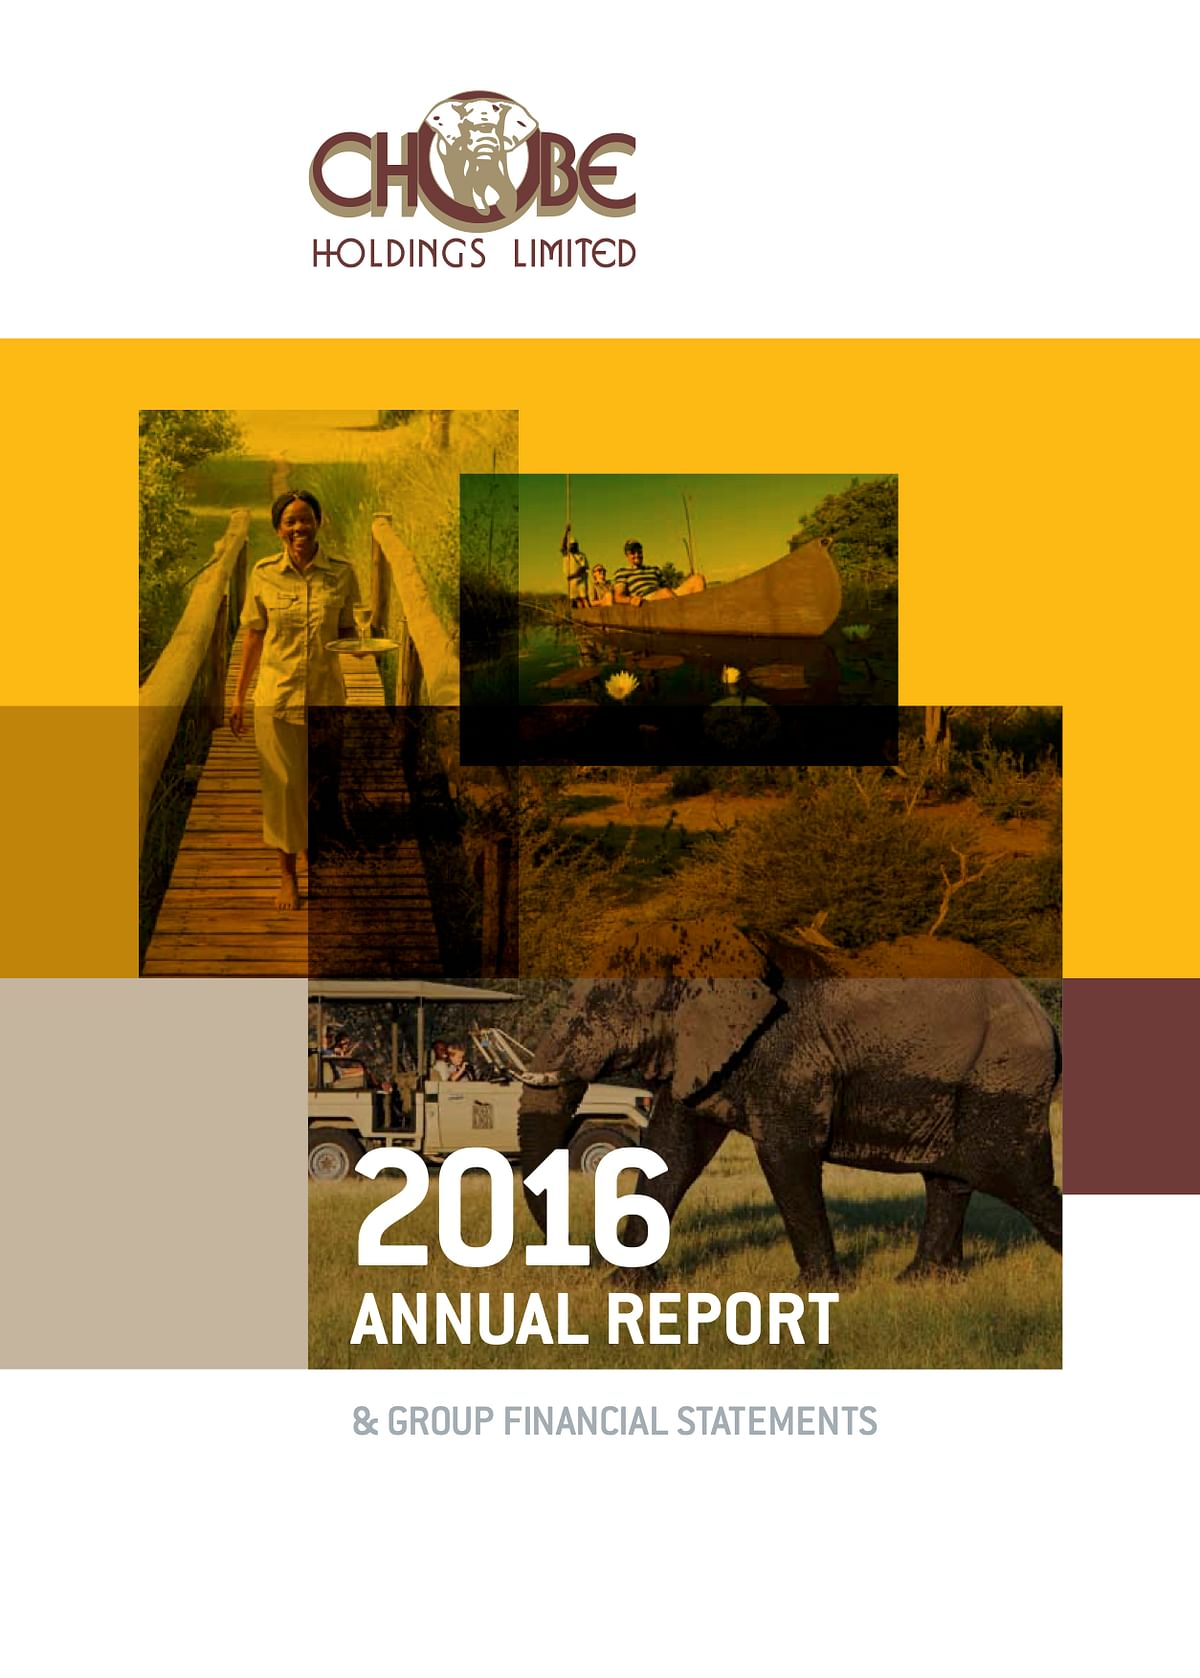 Chobe Holdings Limited Annual Report 2016